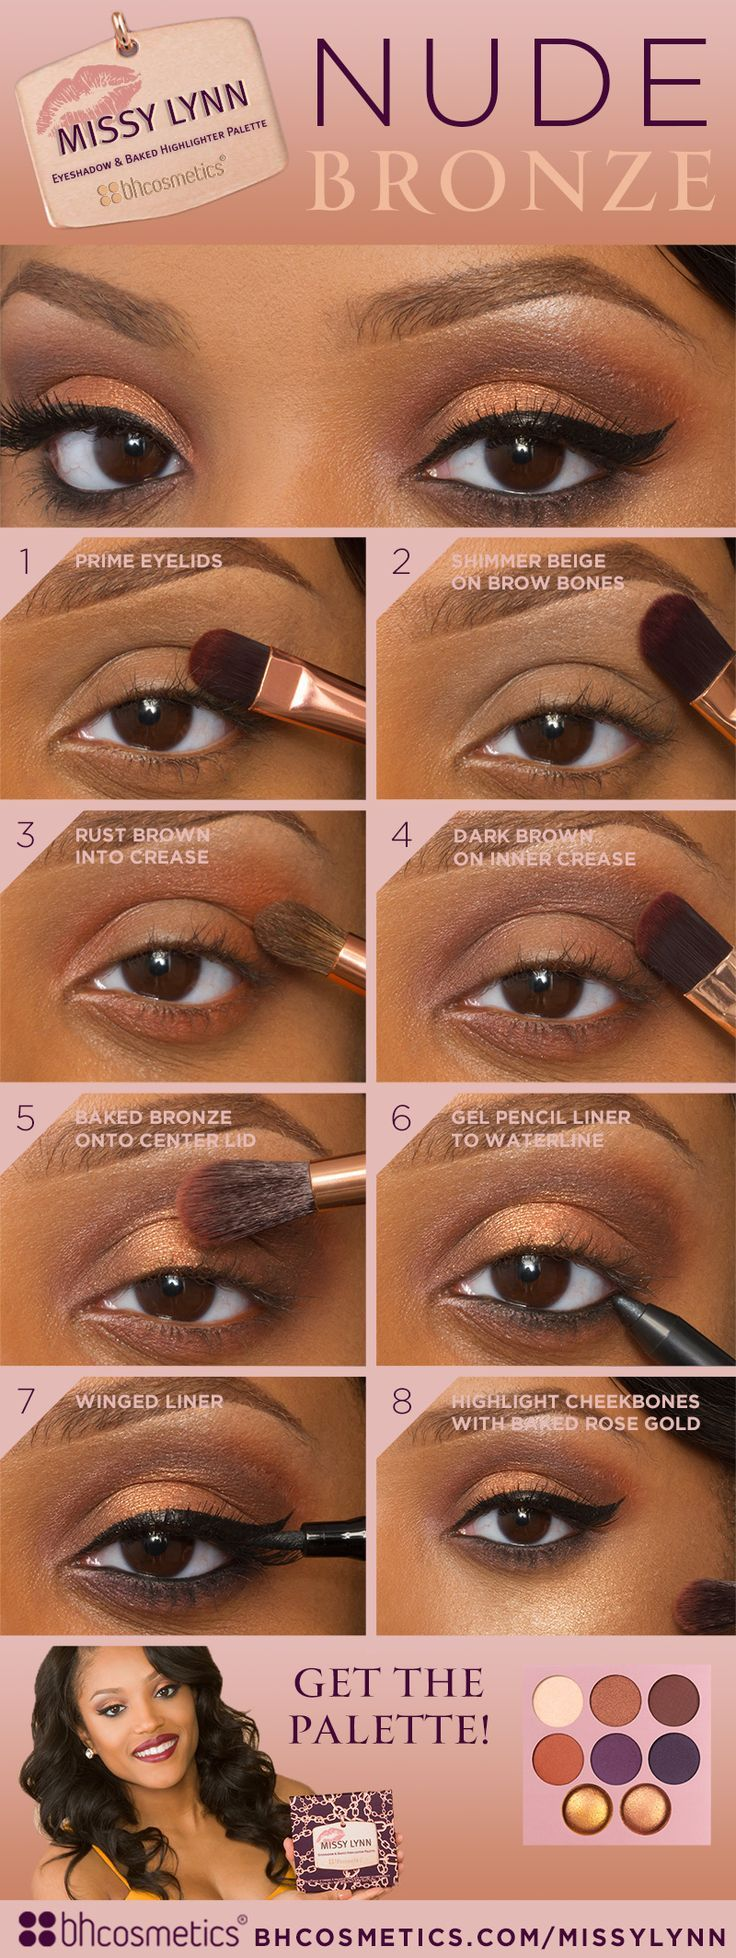 How to Smudge Your Eyeliner Hottest Eyeliner Styles How to Smudge Your Eyeliner Hottest Eyeliner Styles new photo